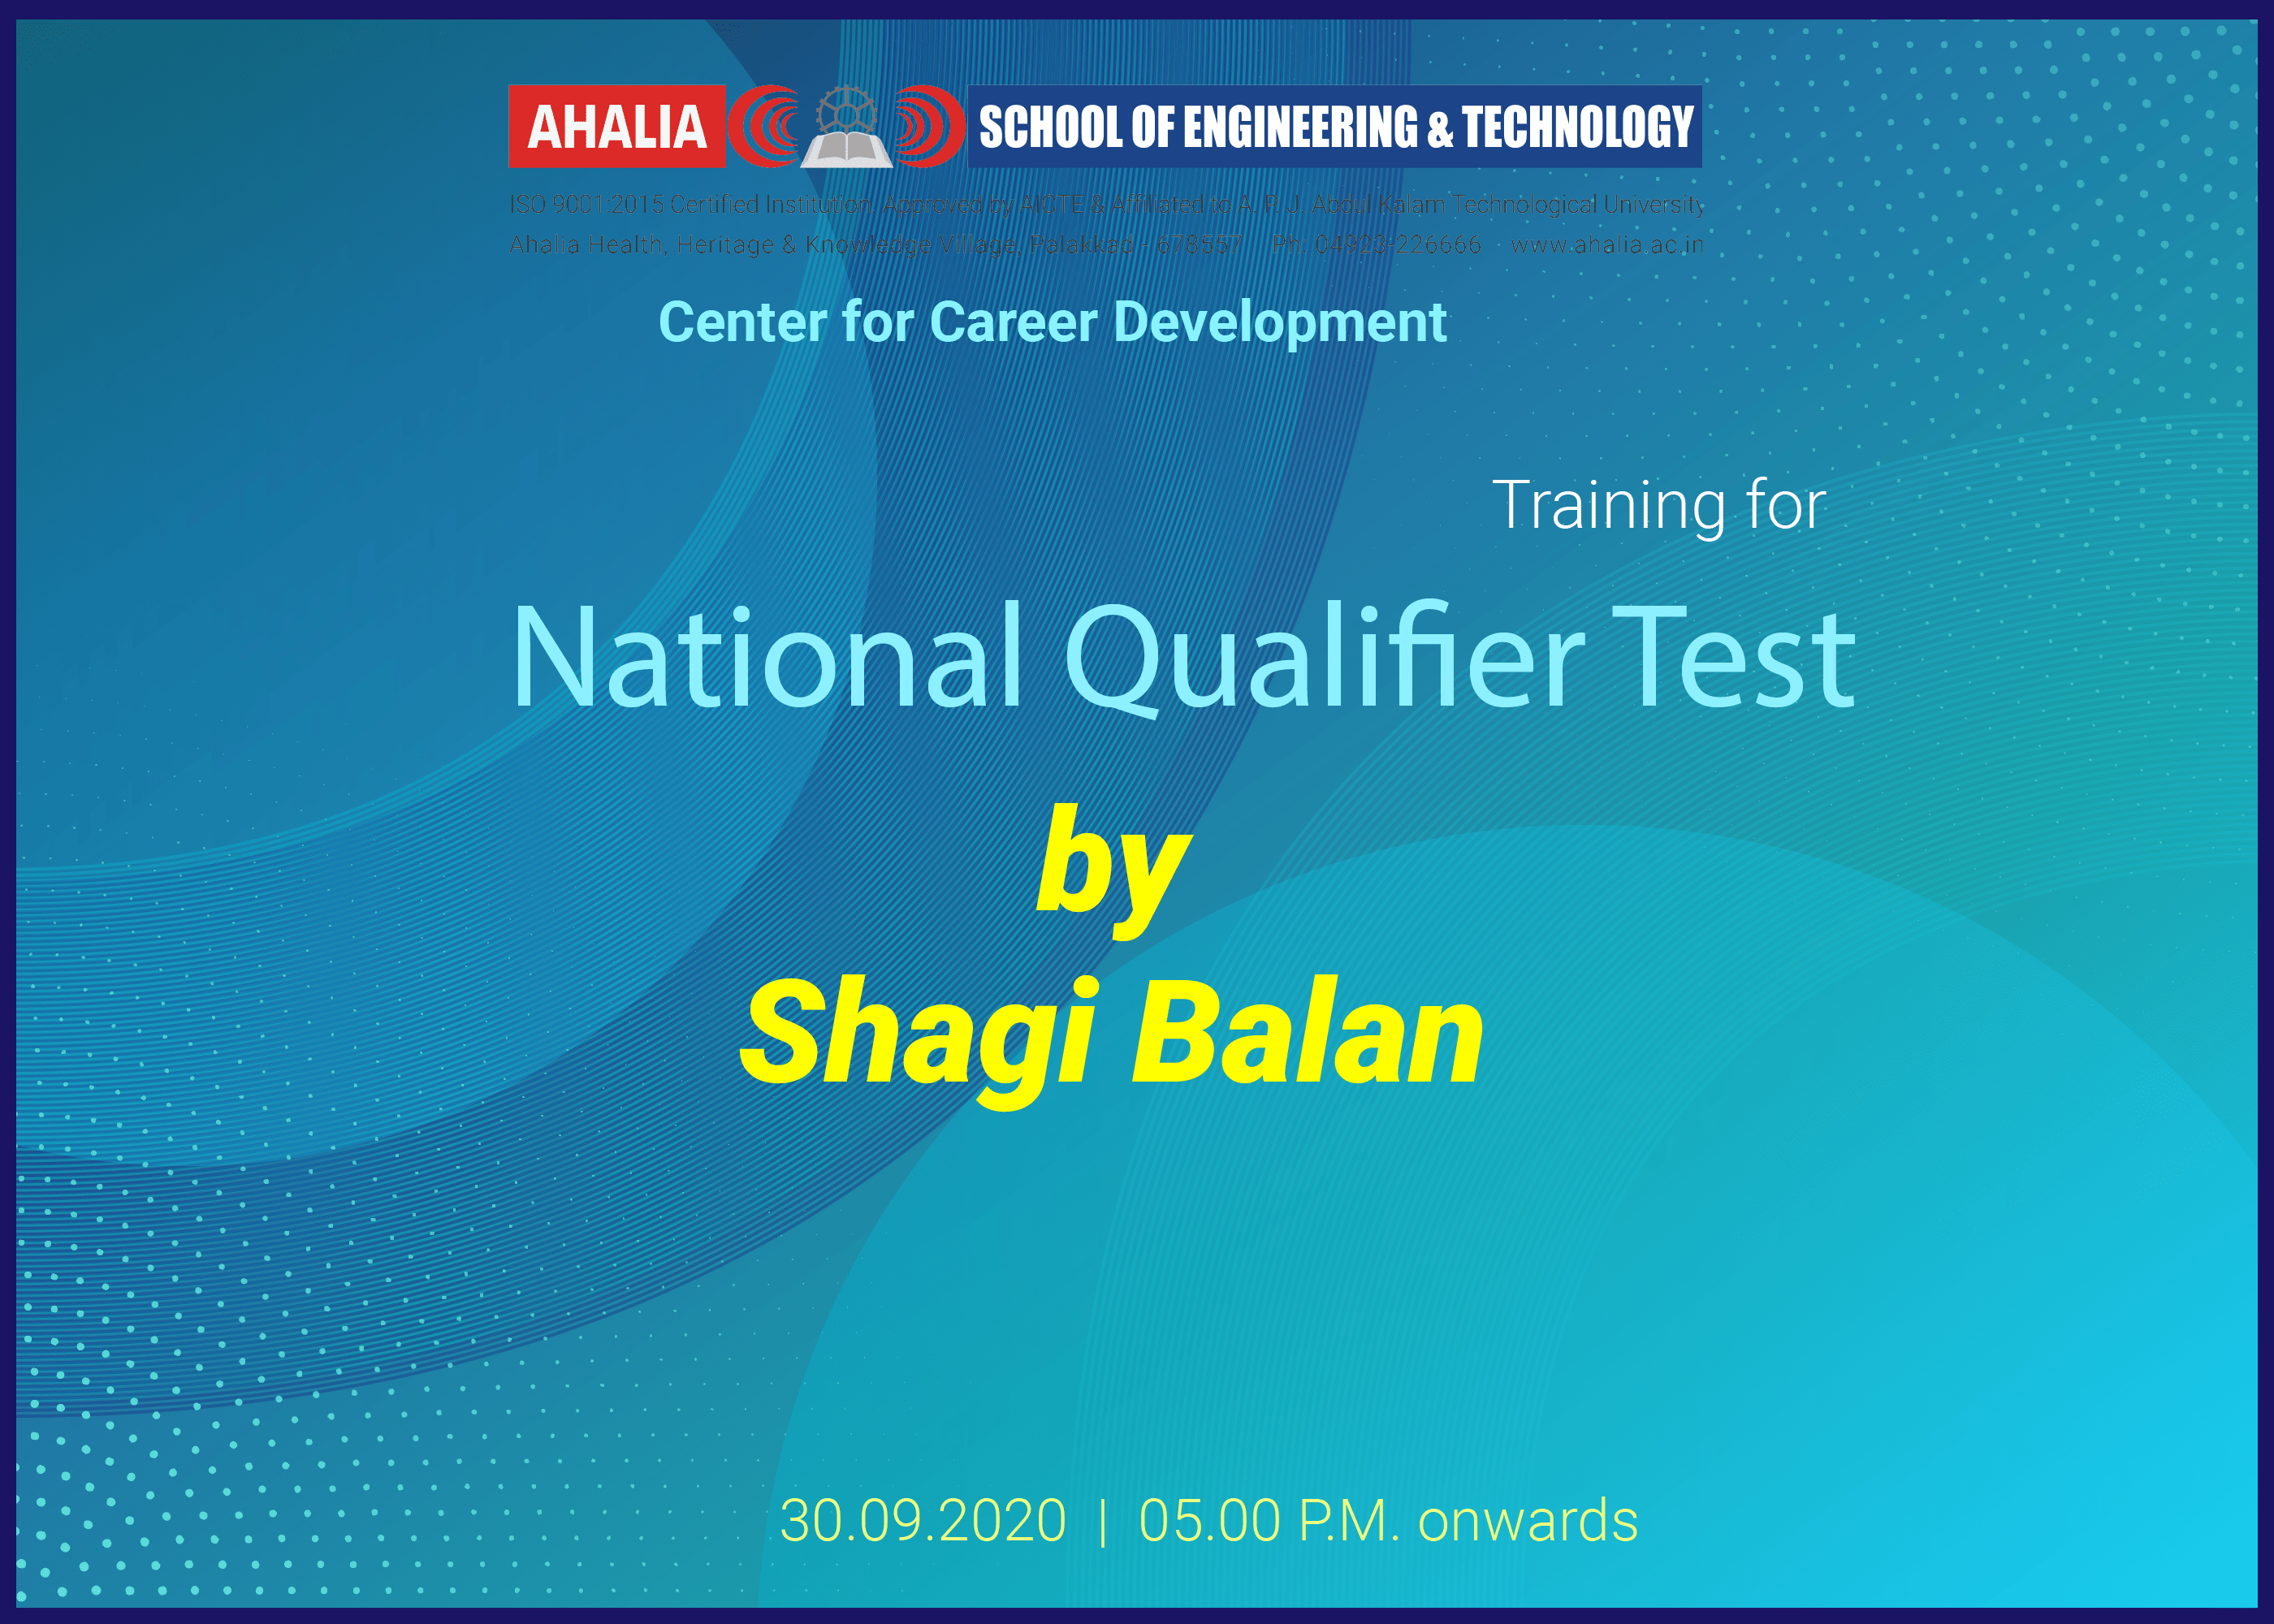 Webinar on Quantitative Aptitude for National Qualifier Test